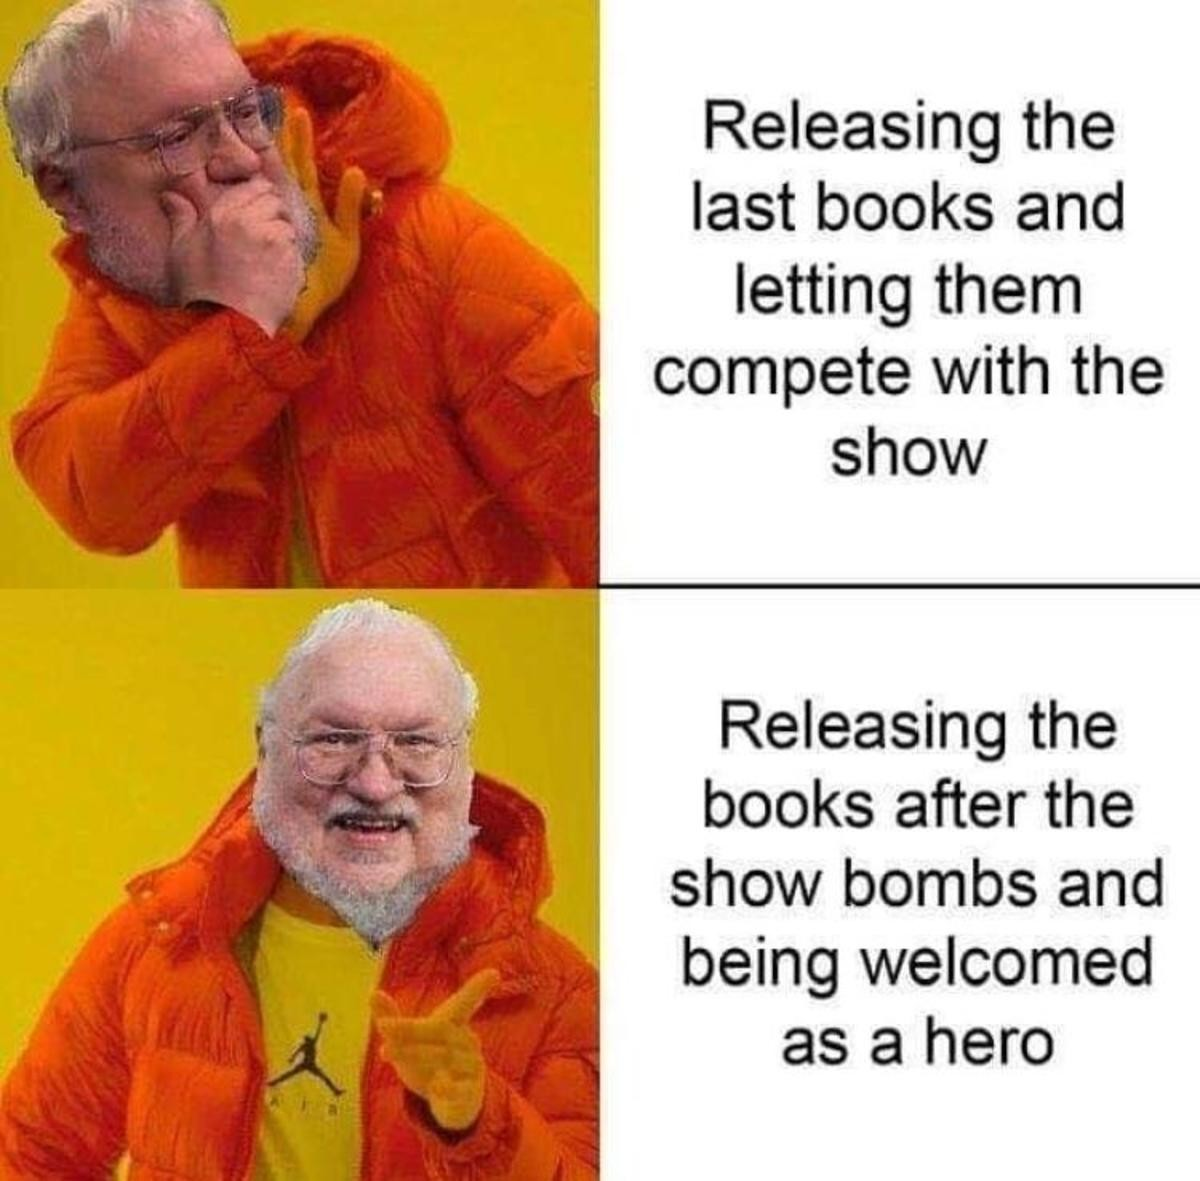 His plan all along. .. Or he's just a Virgin Gardener who can't compete with a Chad Architect like Tolkien But yeah, I would not be surprised if his book sales went up due to the poor